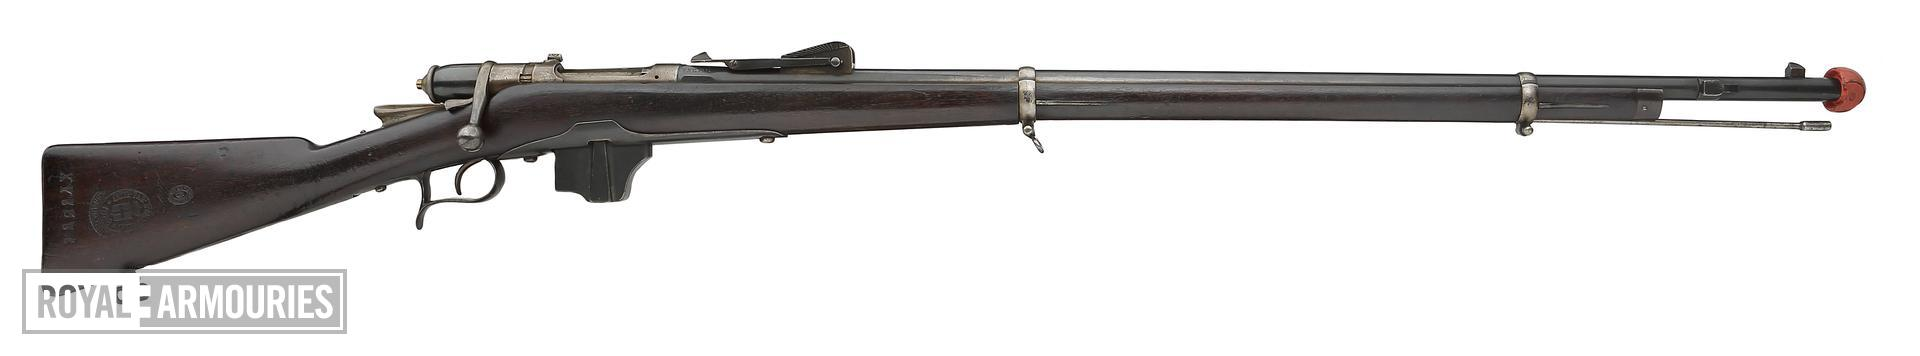 Centrefire bolt-action rifle - Vetterli-Vitali Model 1870/87